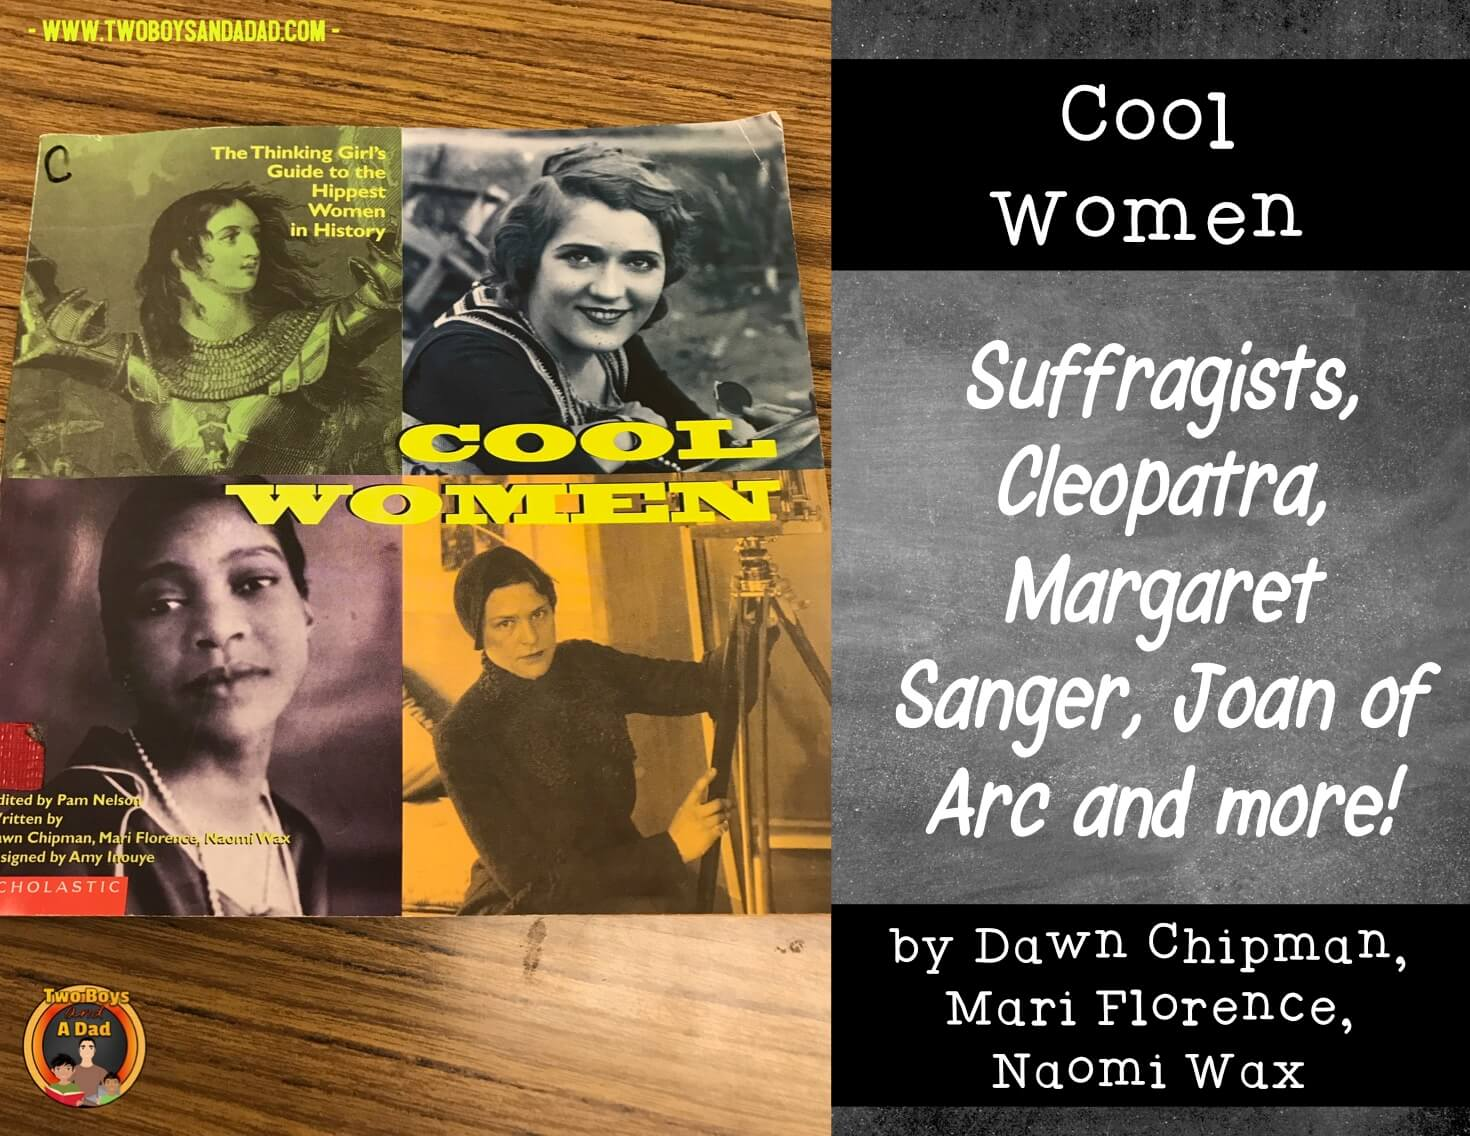 More cool and inspiring women in history